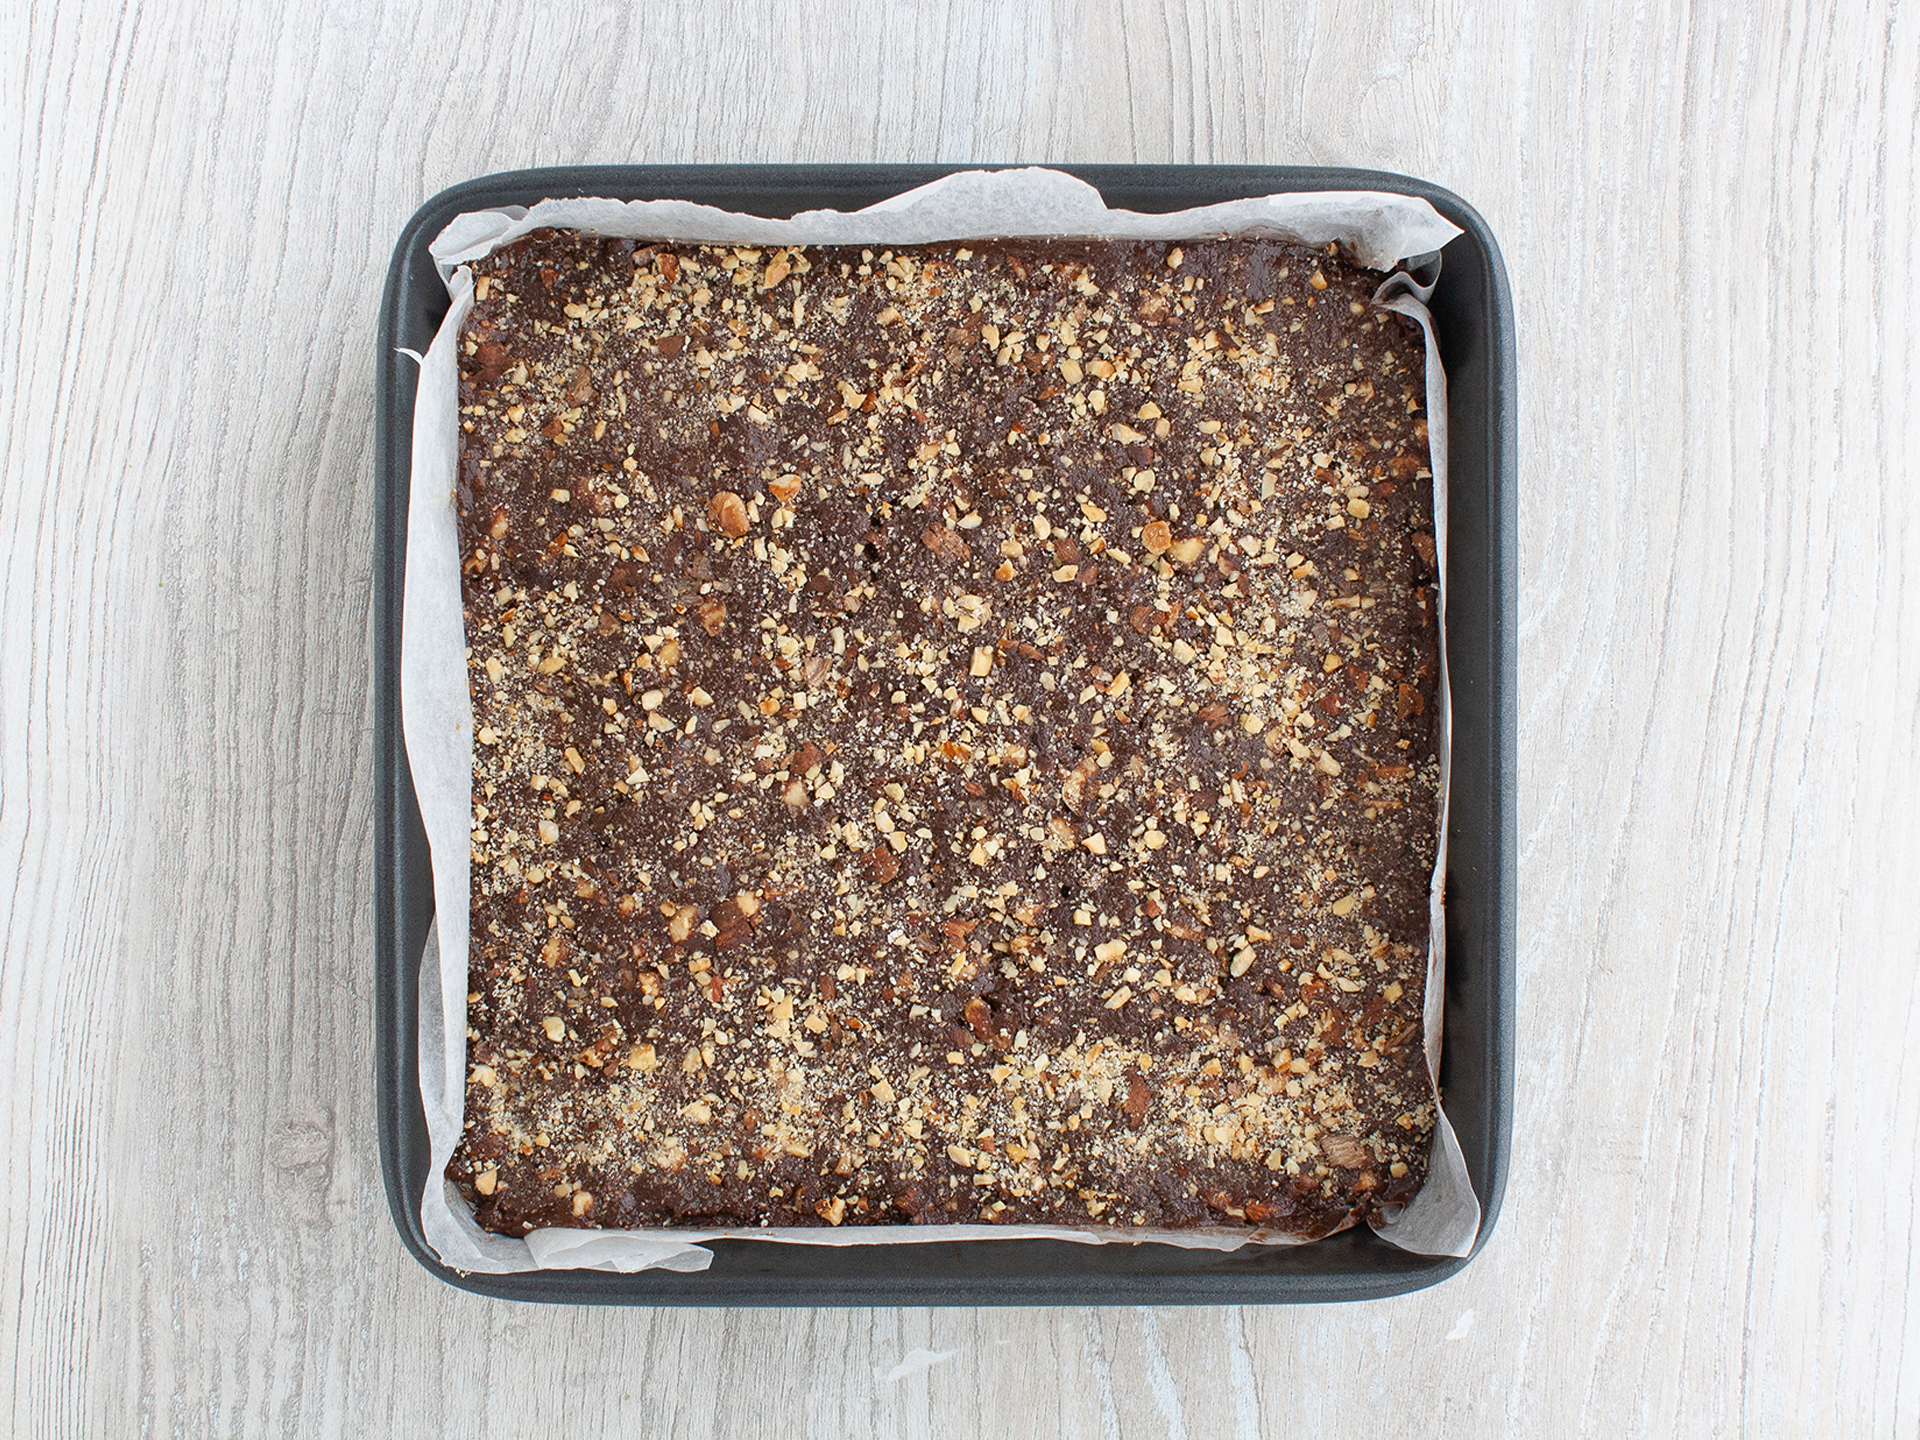 Step 5.1 of Vegan High Protein High Fiber Date Energy Bars